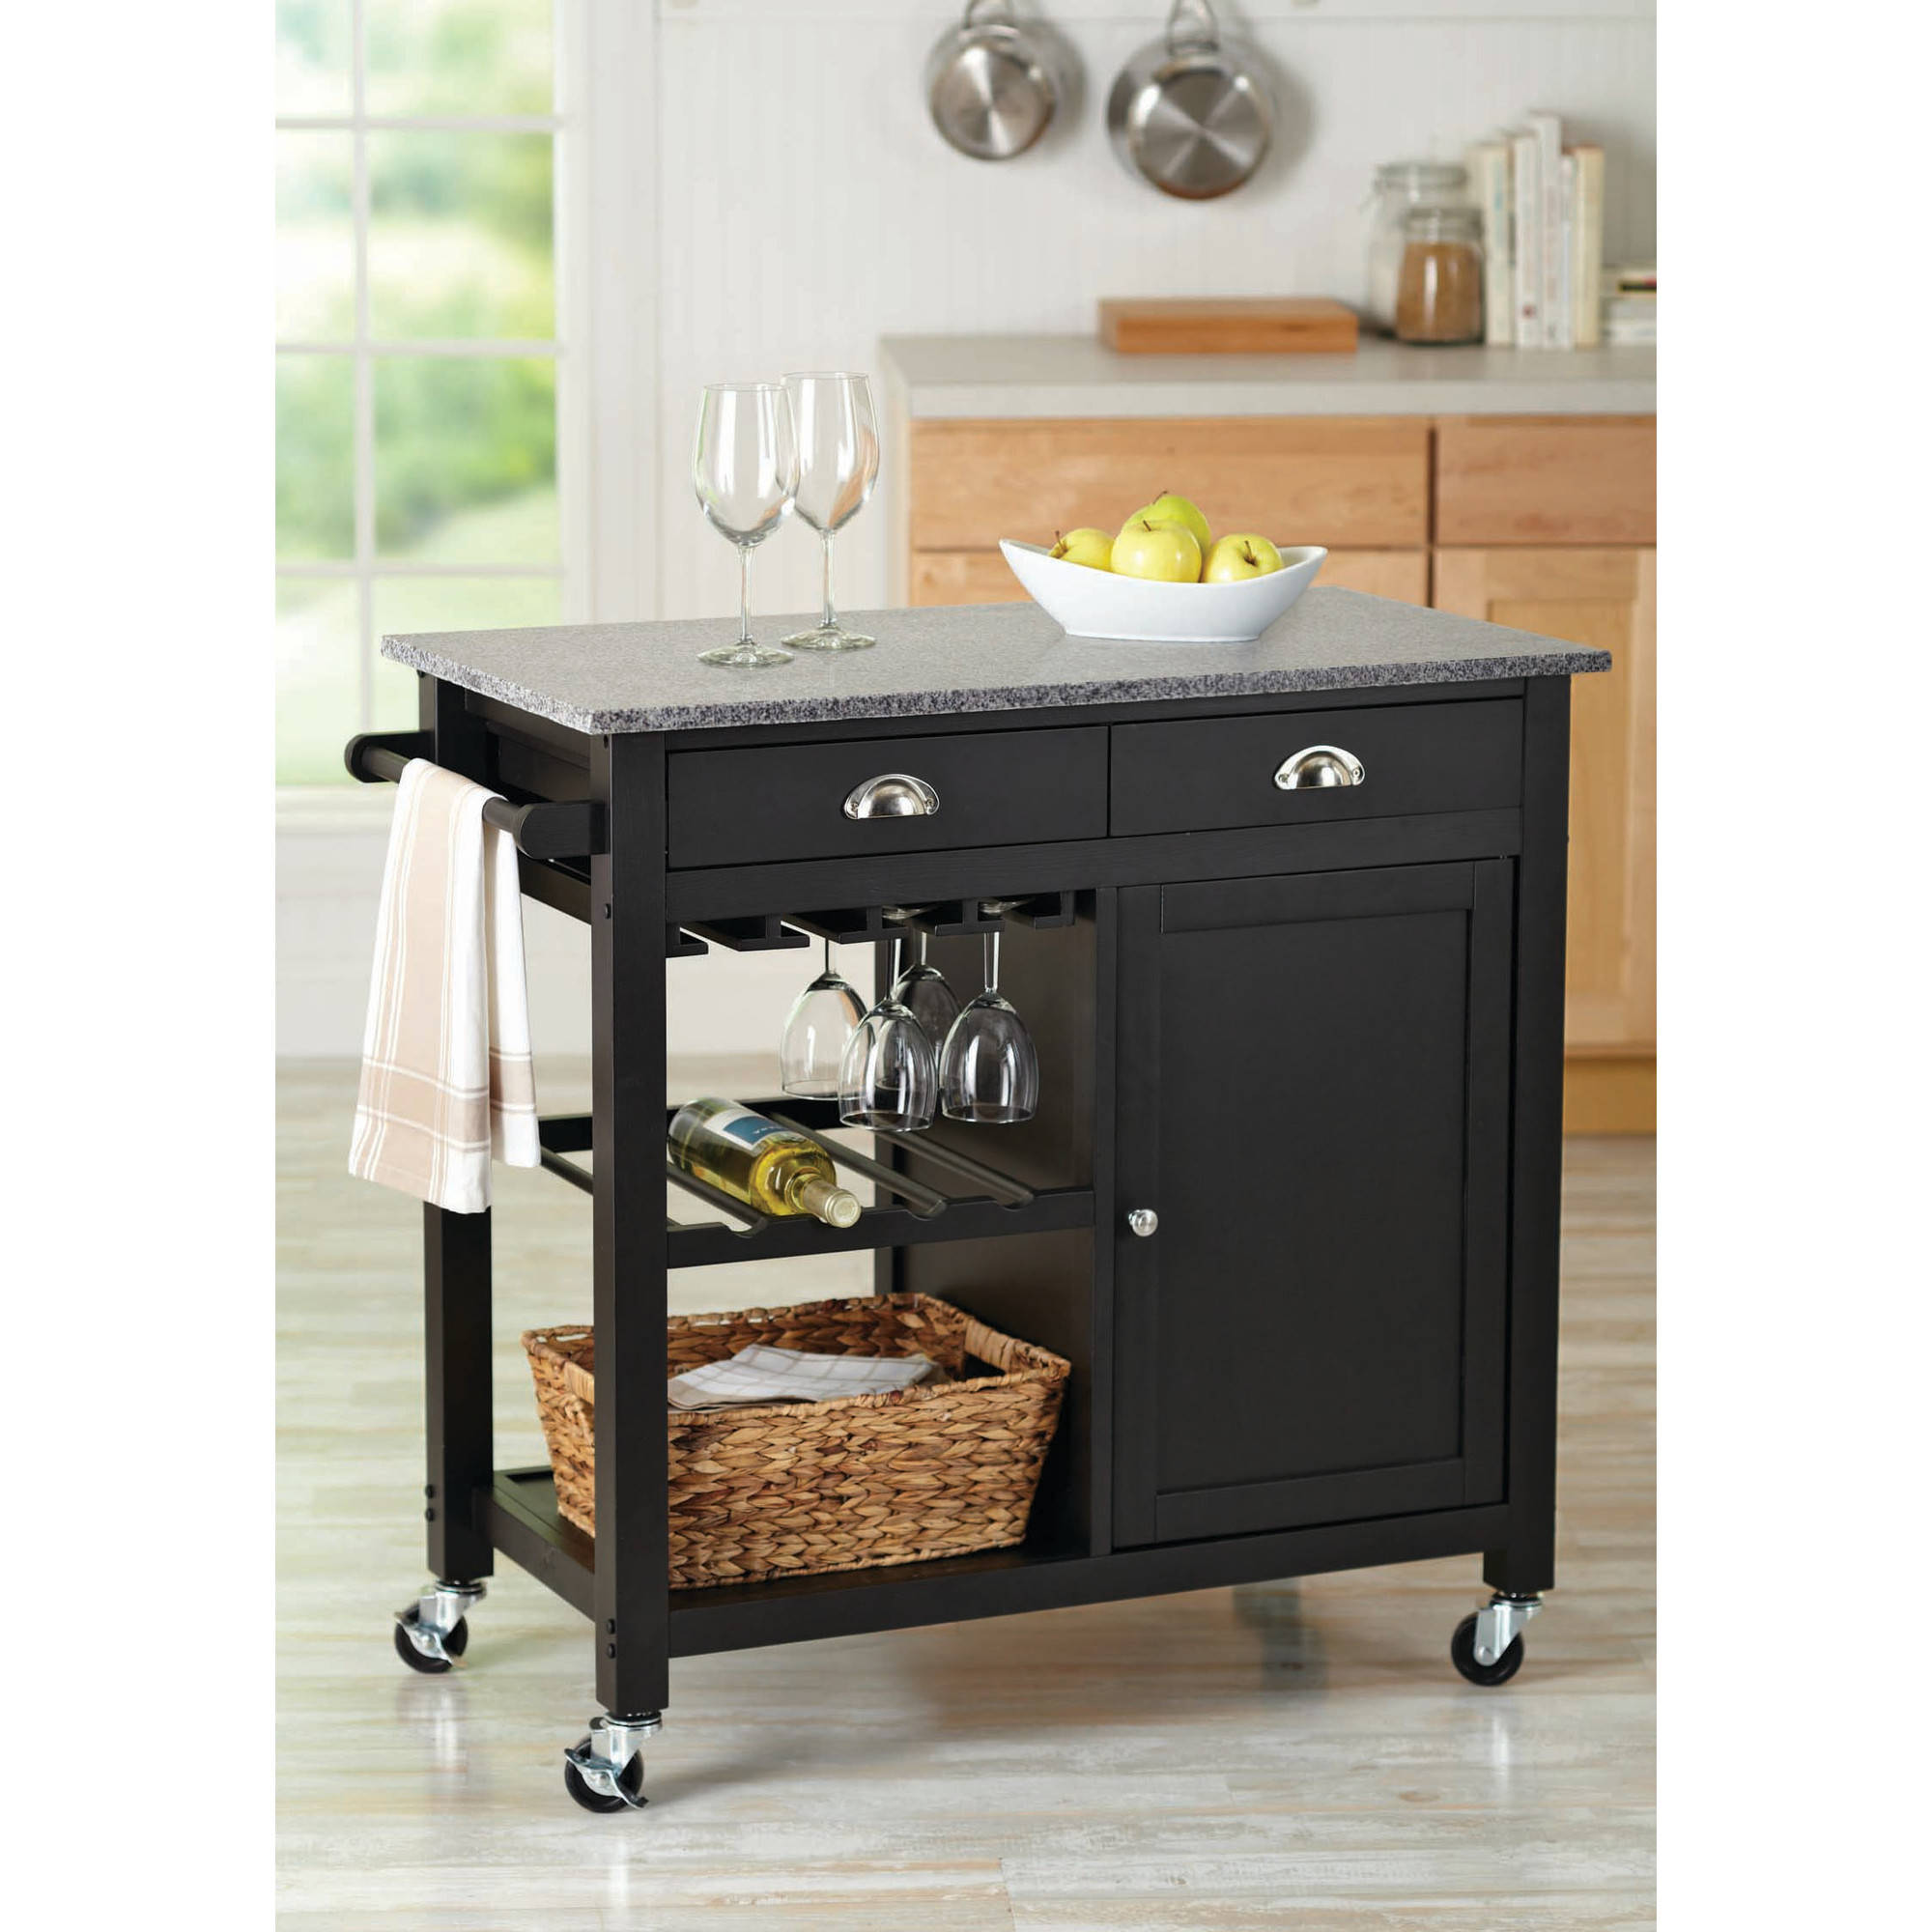 Better Homes and Gardens Deluxe Kitchen Cart island Black